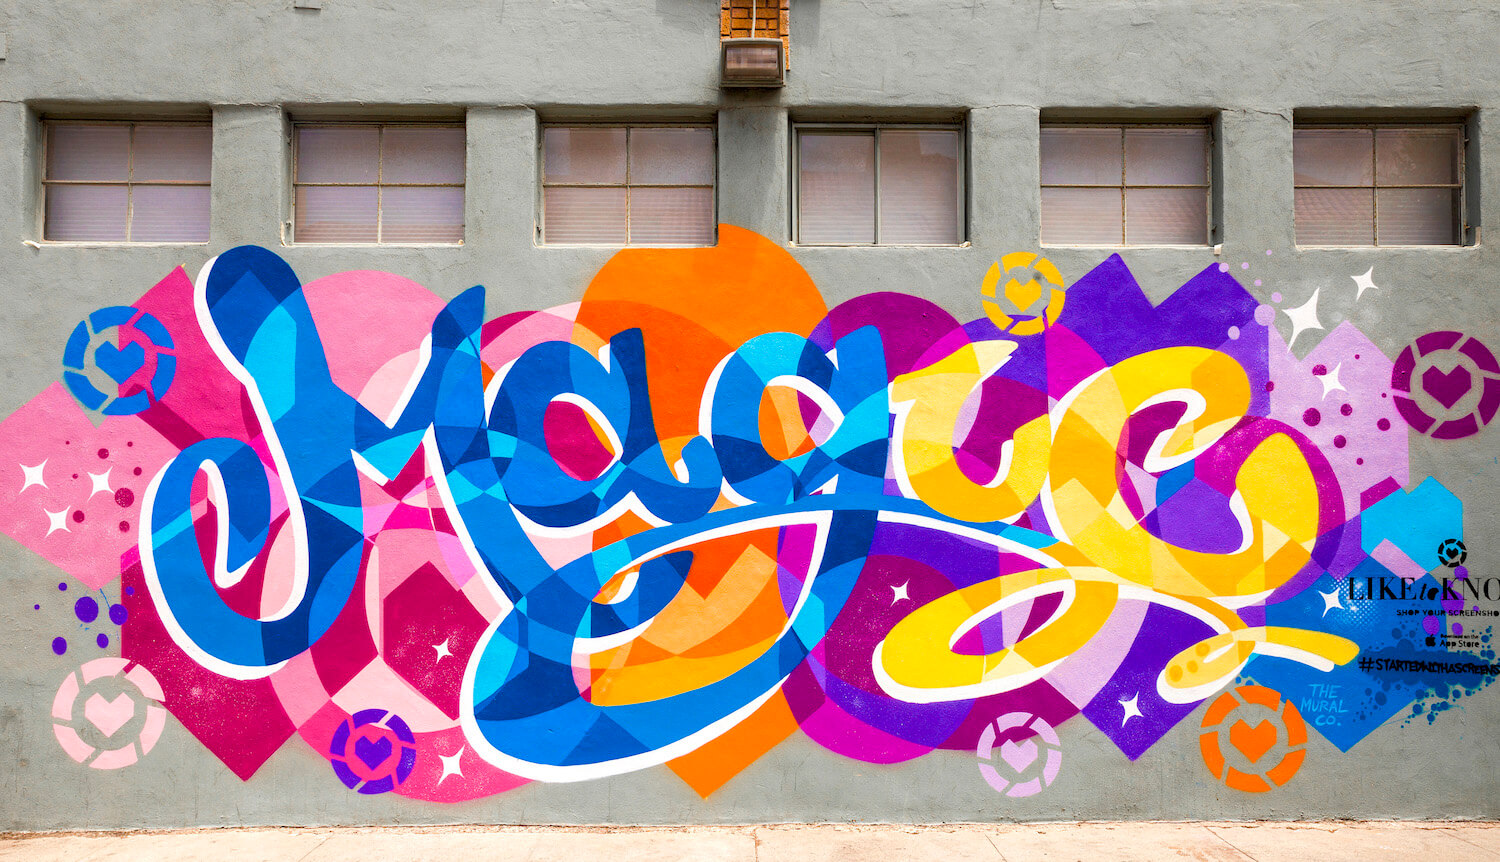 Commissioned Exterior Mural for LiketoKnow.it | Los Angeles USA, 2017